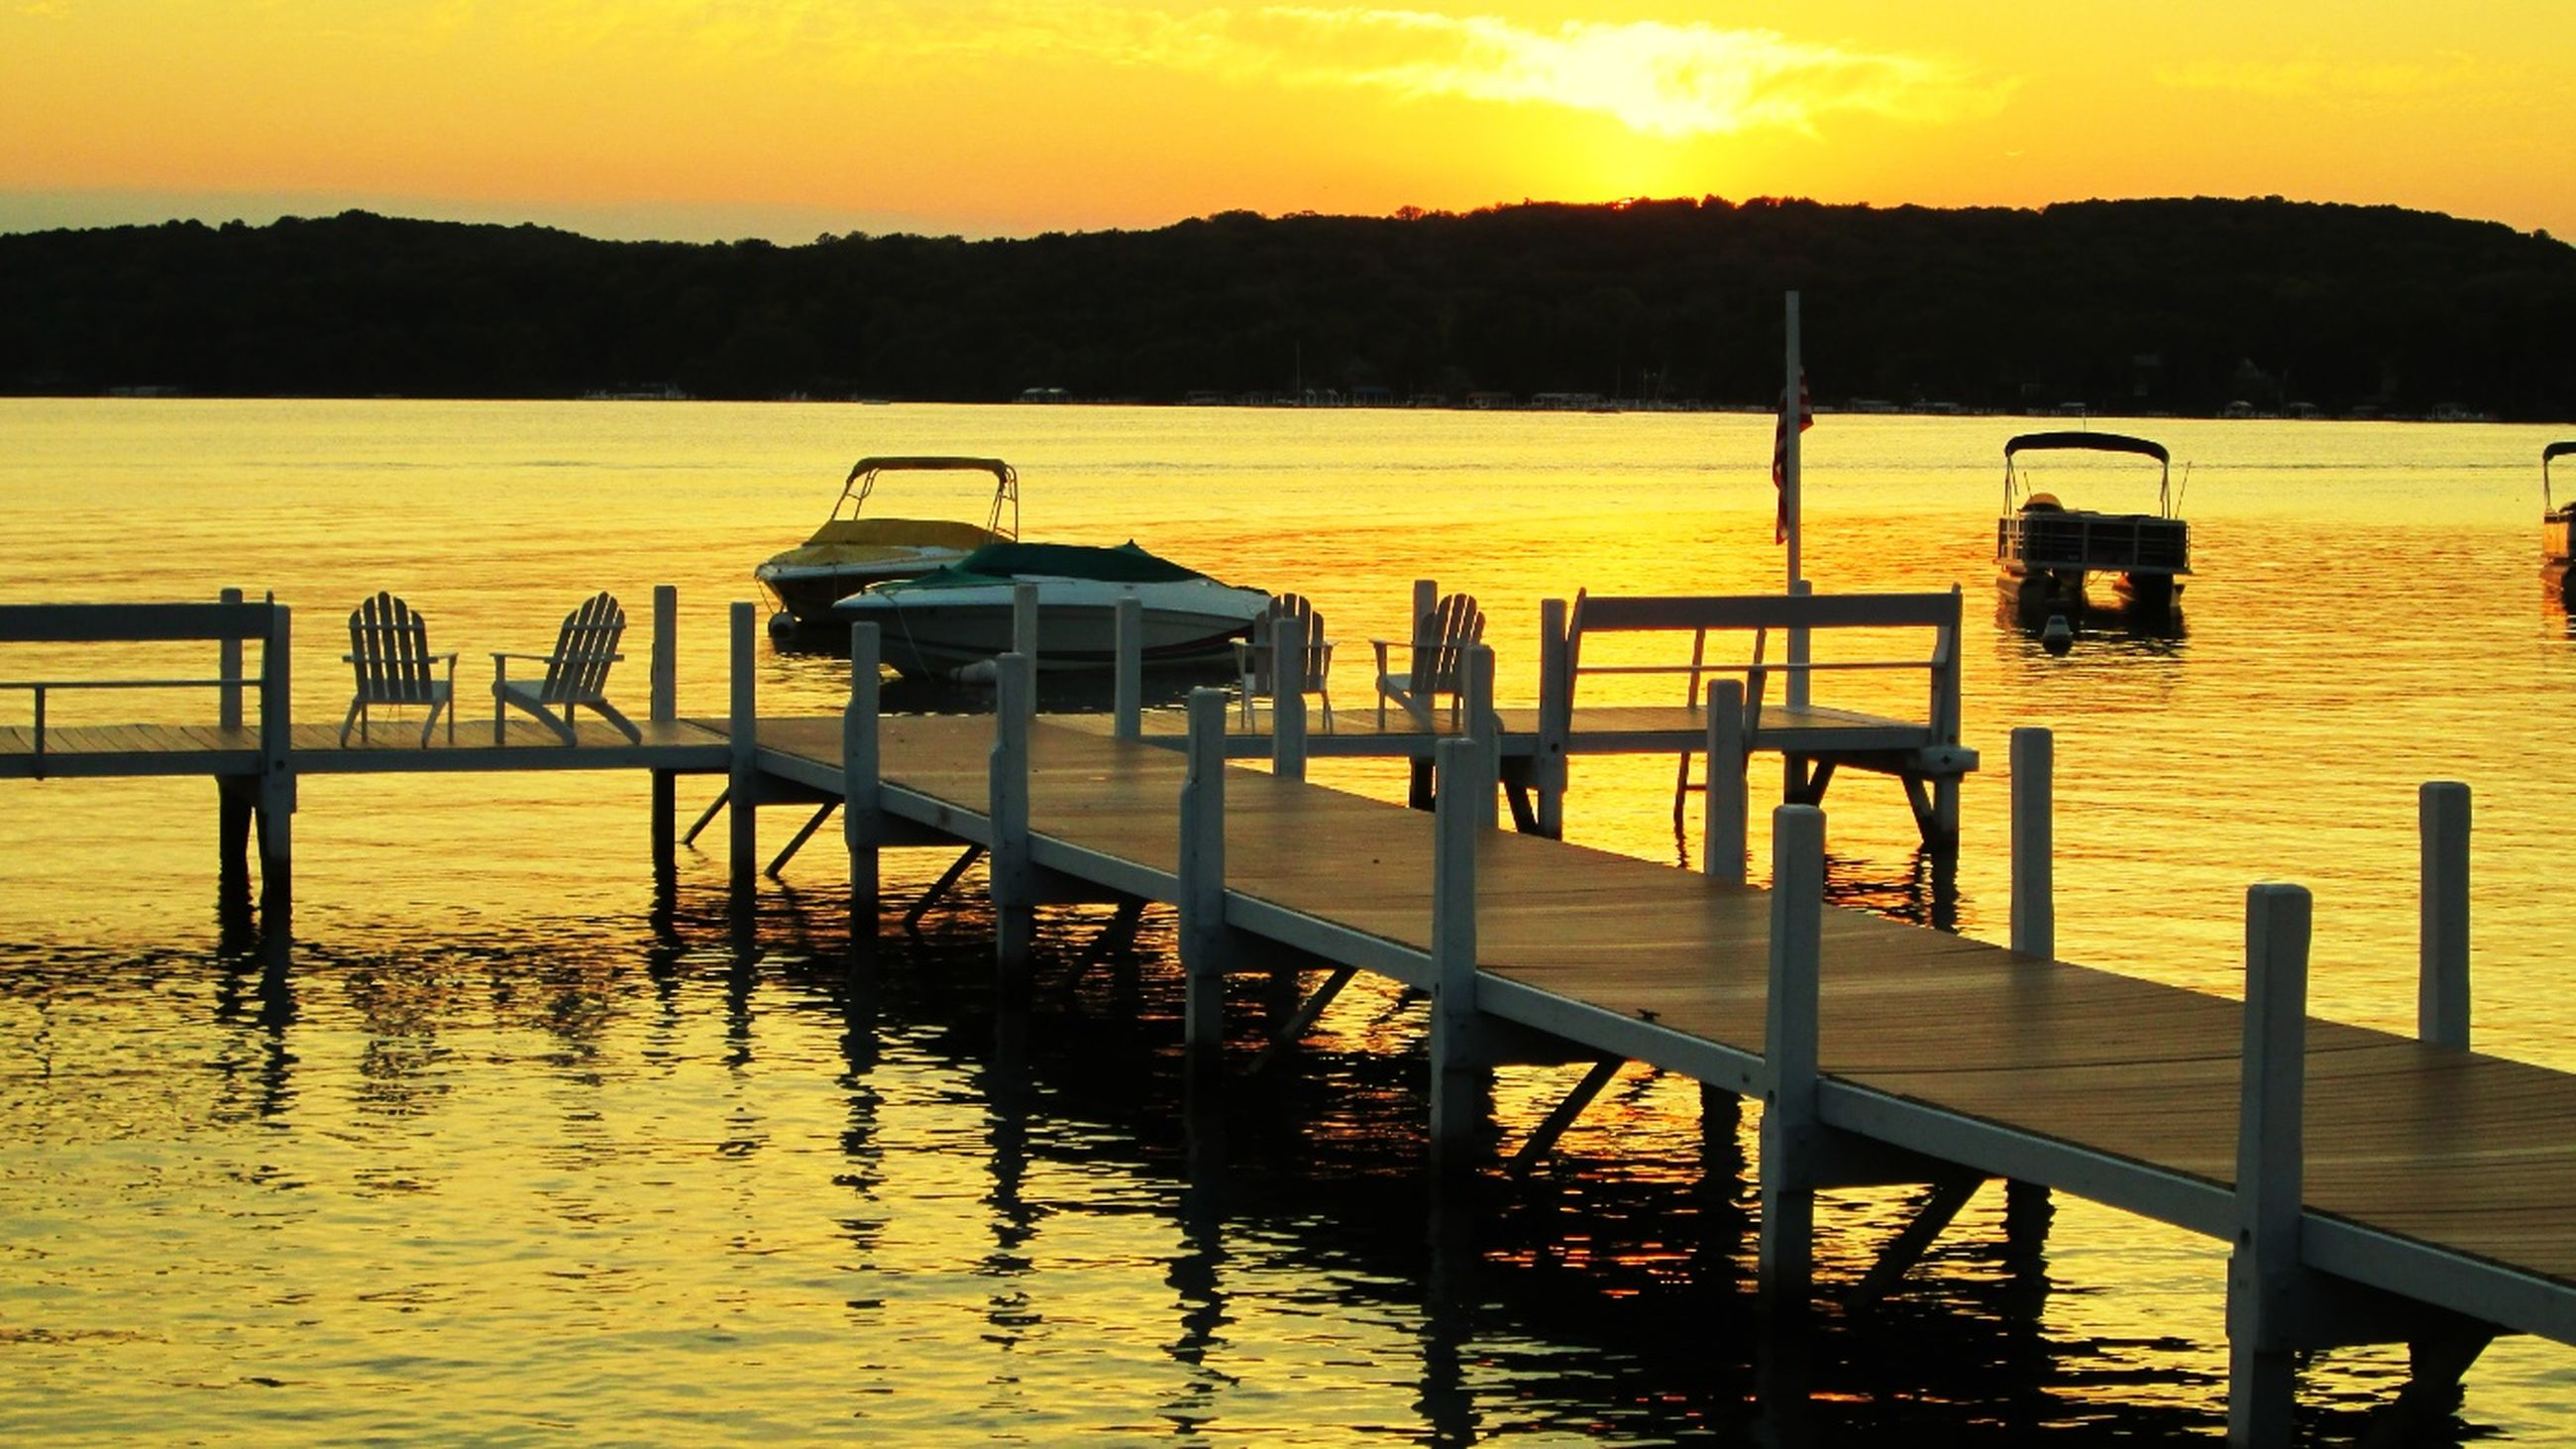 sunset, water, transportation, mode of transport, nautical vessel, tranquil scene, river, orange color, tranquility, scenics, waterfront, lake, sky, reflection, beauty in nature, boat, nature, pier, silhouette, yellow